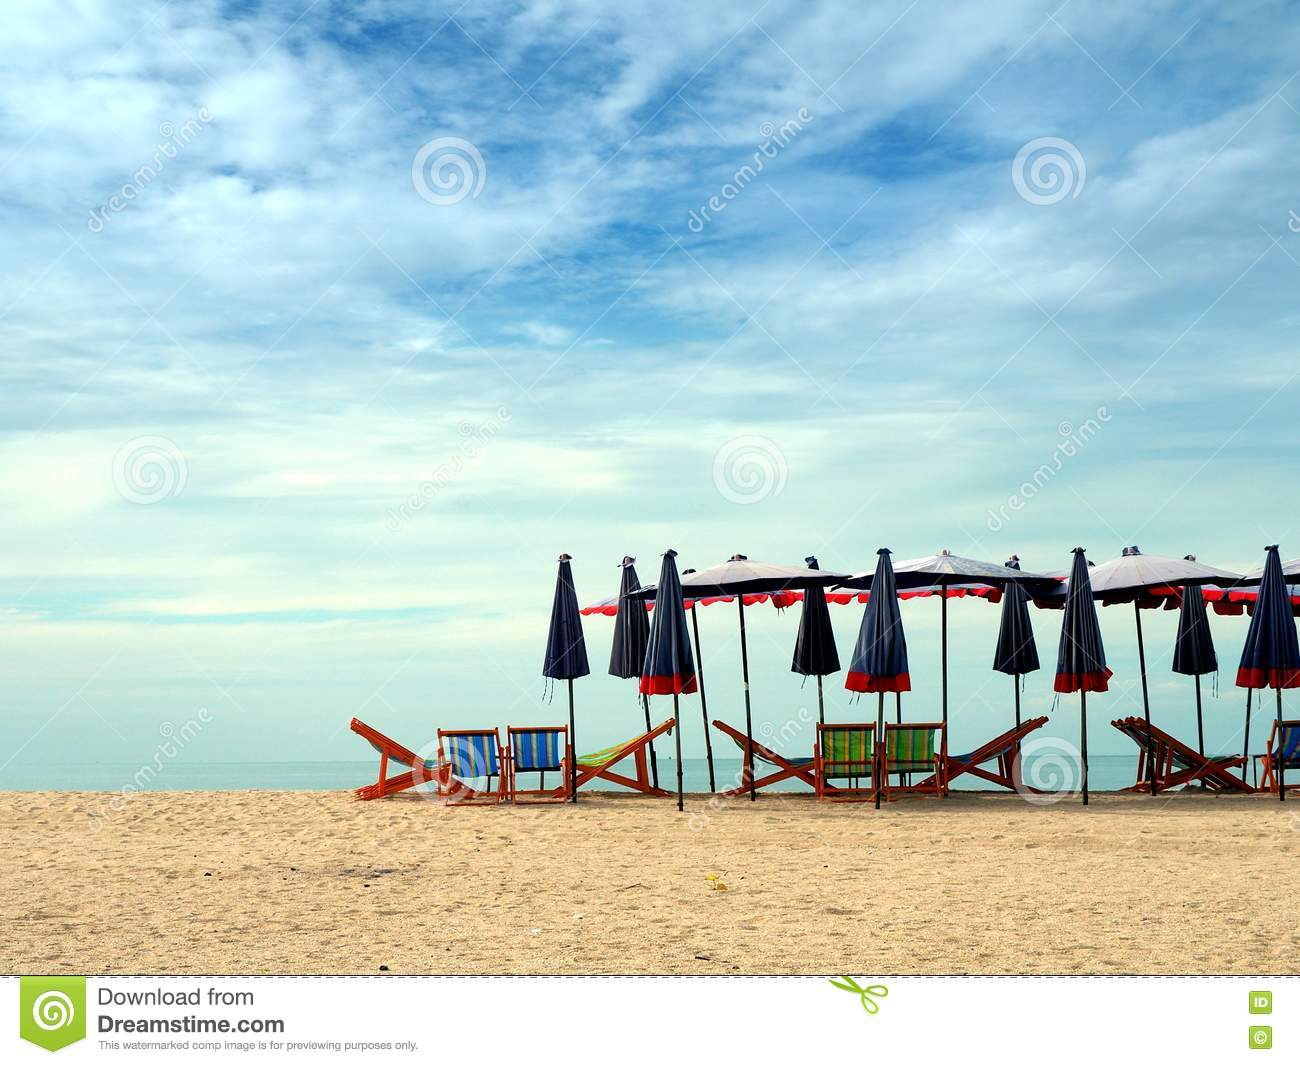 Colorful Beach Chairs - Colorful beach chairs and umbrellas for tourism relax in vocation